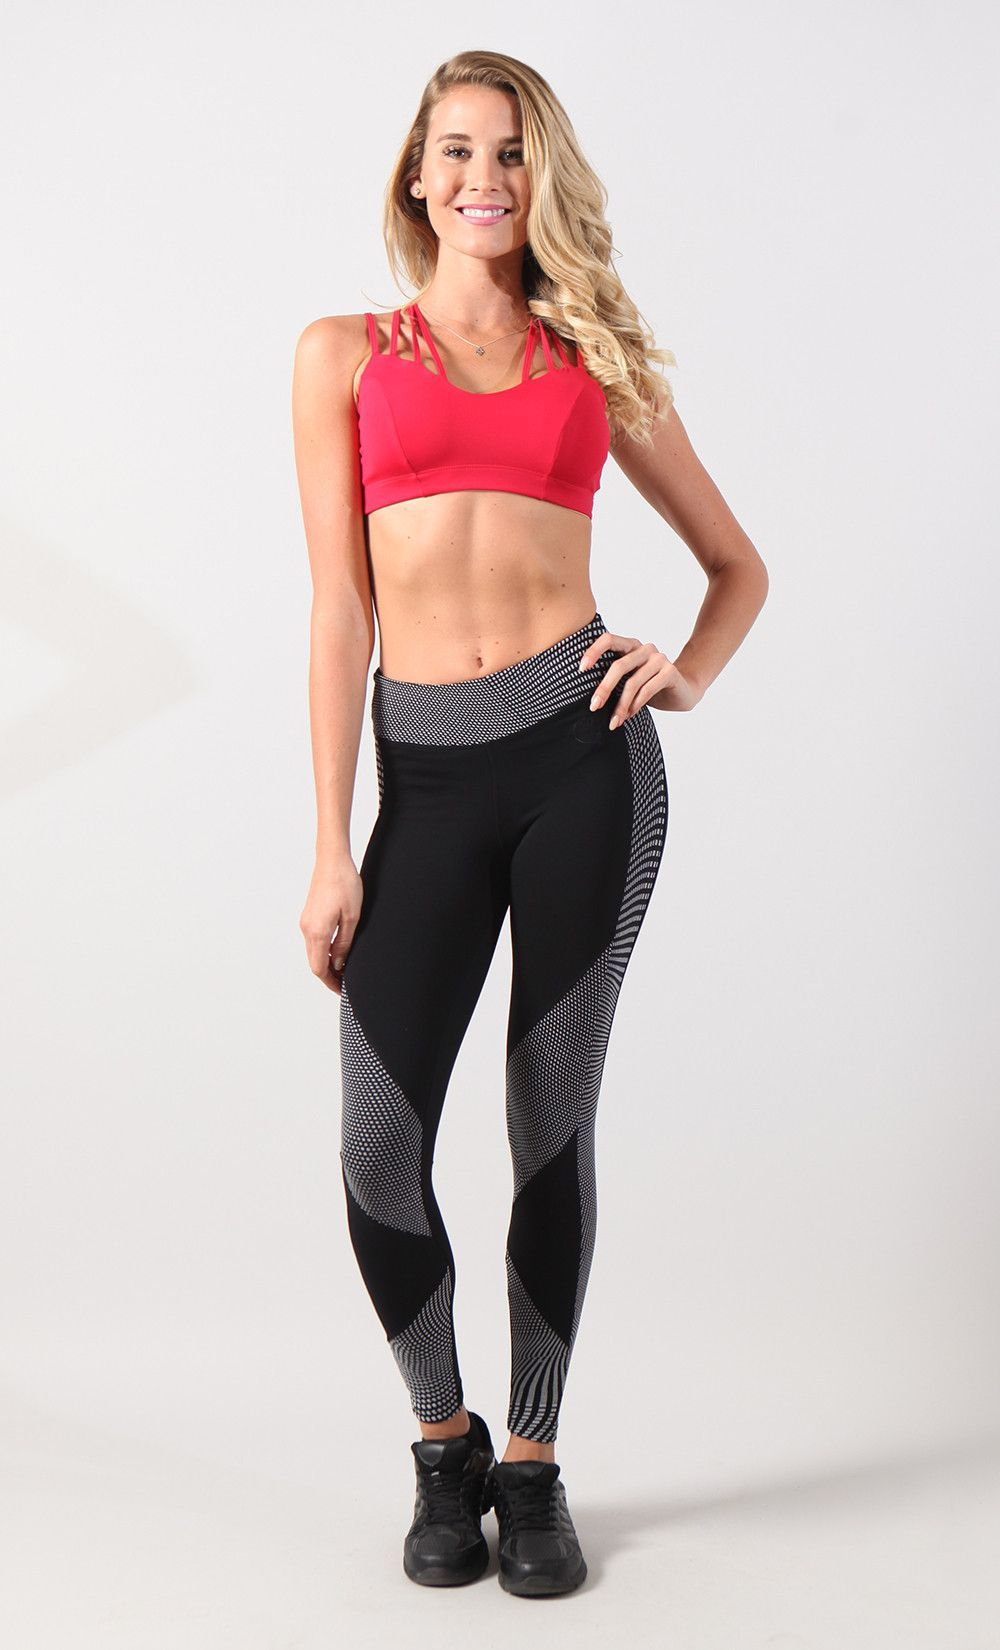 Get ready to be noticed in Red Bra Top!! Find it here http://ivysquarefashions.com/products/red-bra-top?utm_campaign=social_autopilot&utm_source=pin&utm_medium=pin.